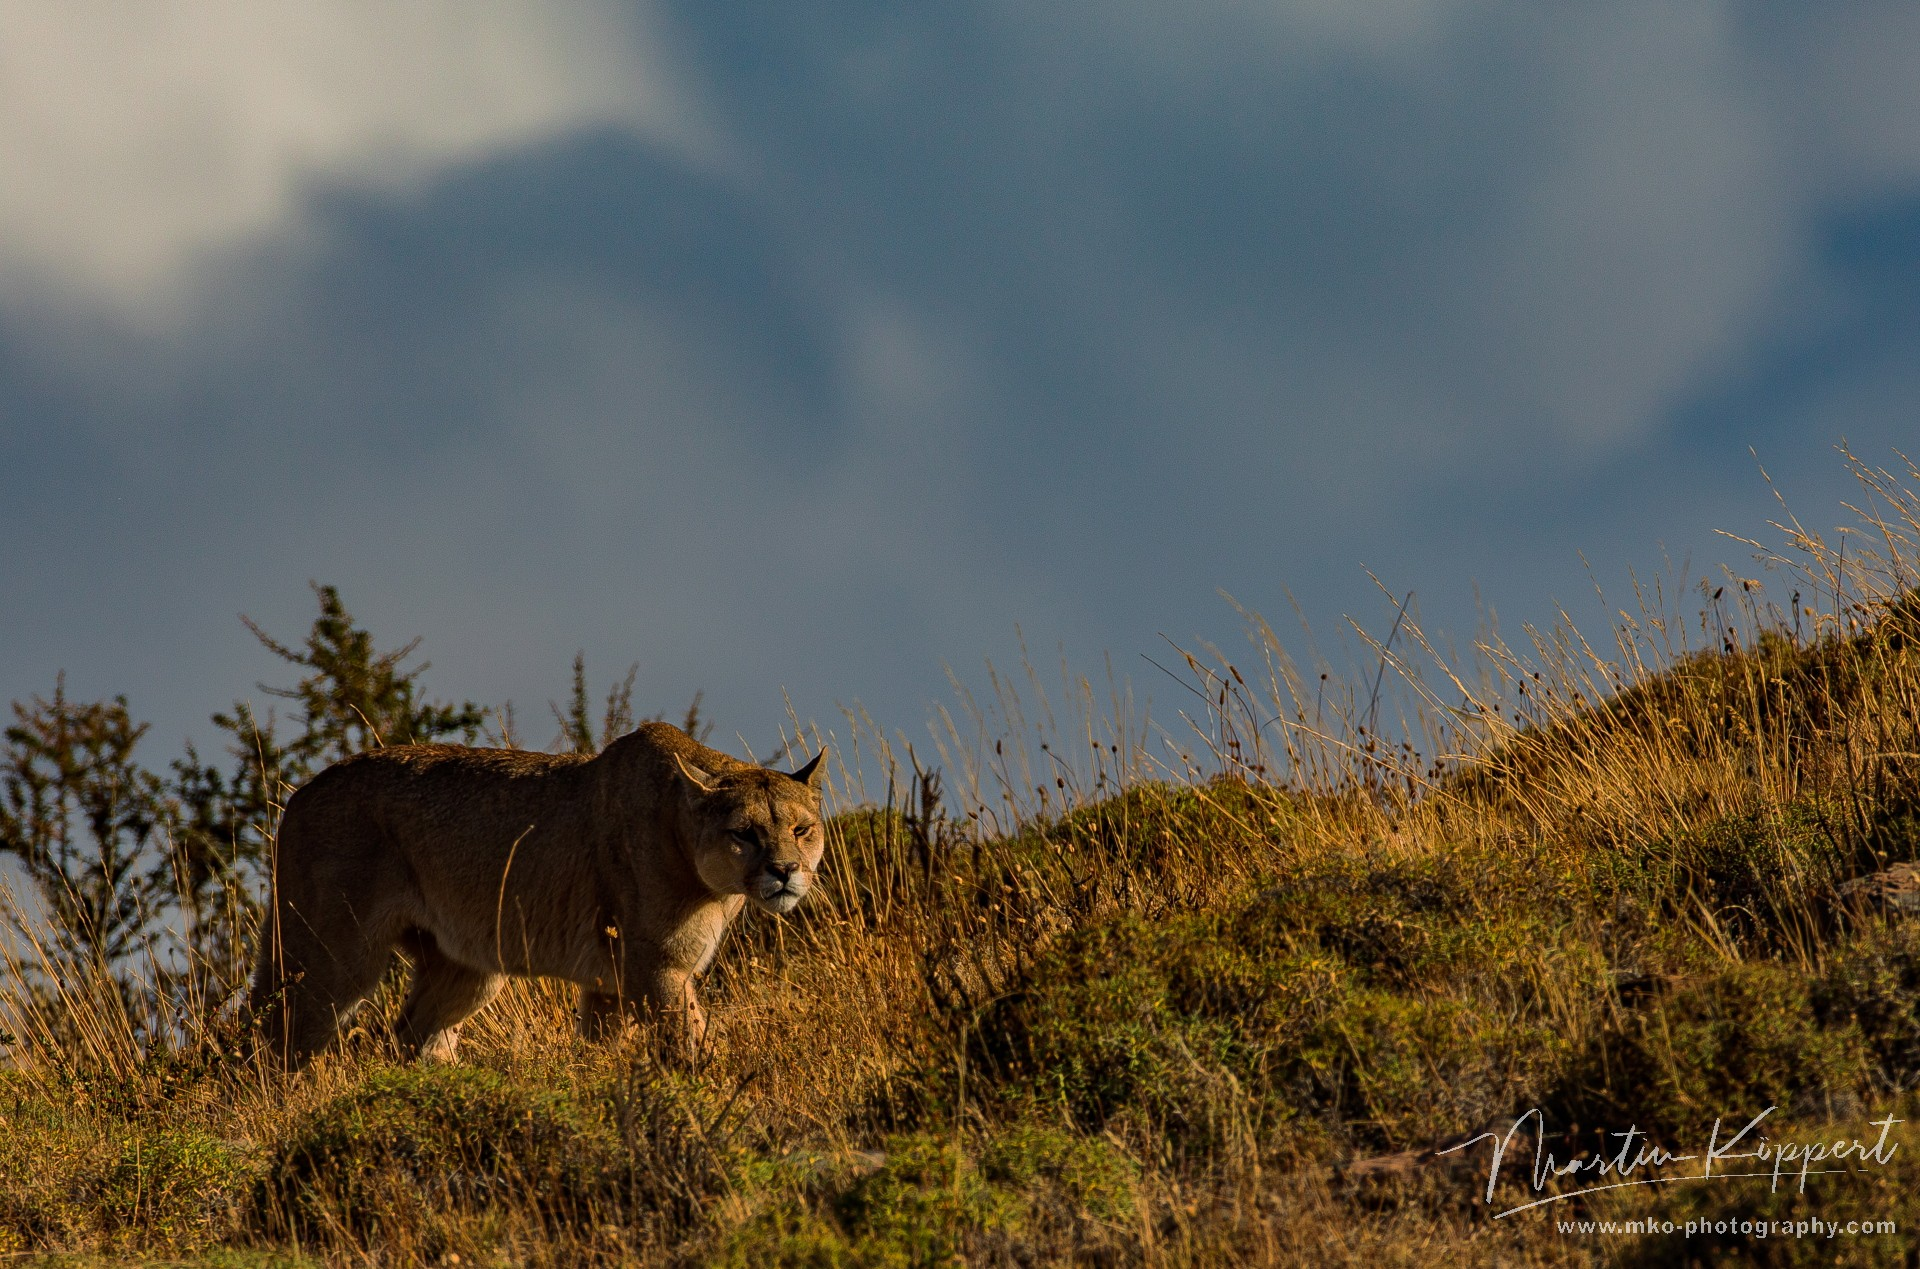 7P8A3031 Puma Sister Torre del Paine Patagonia Southern Chile